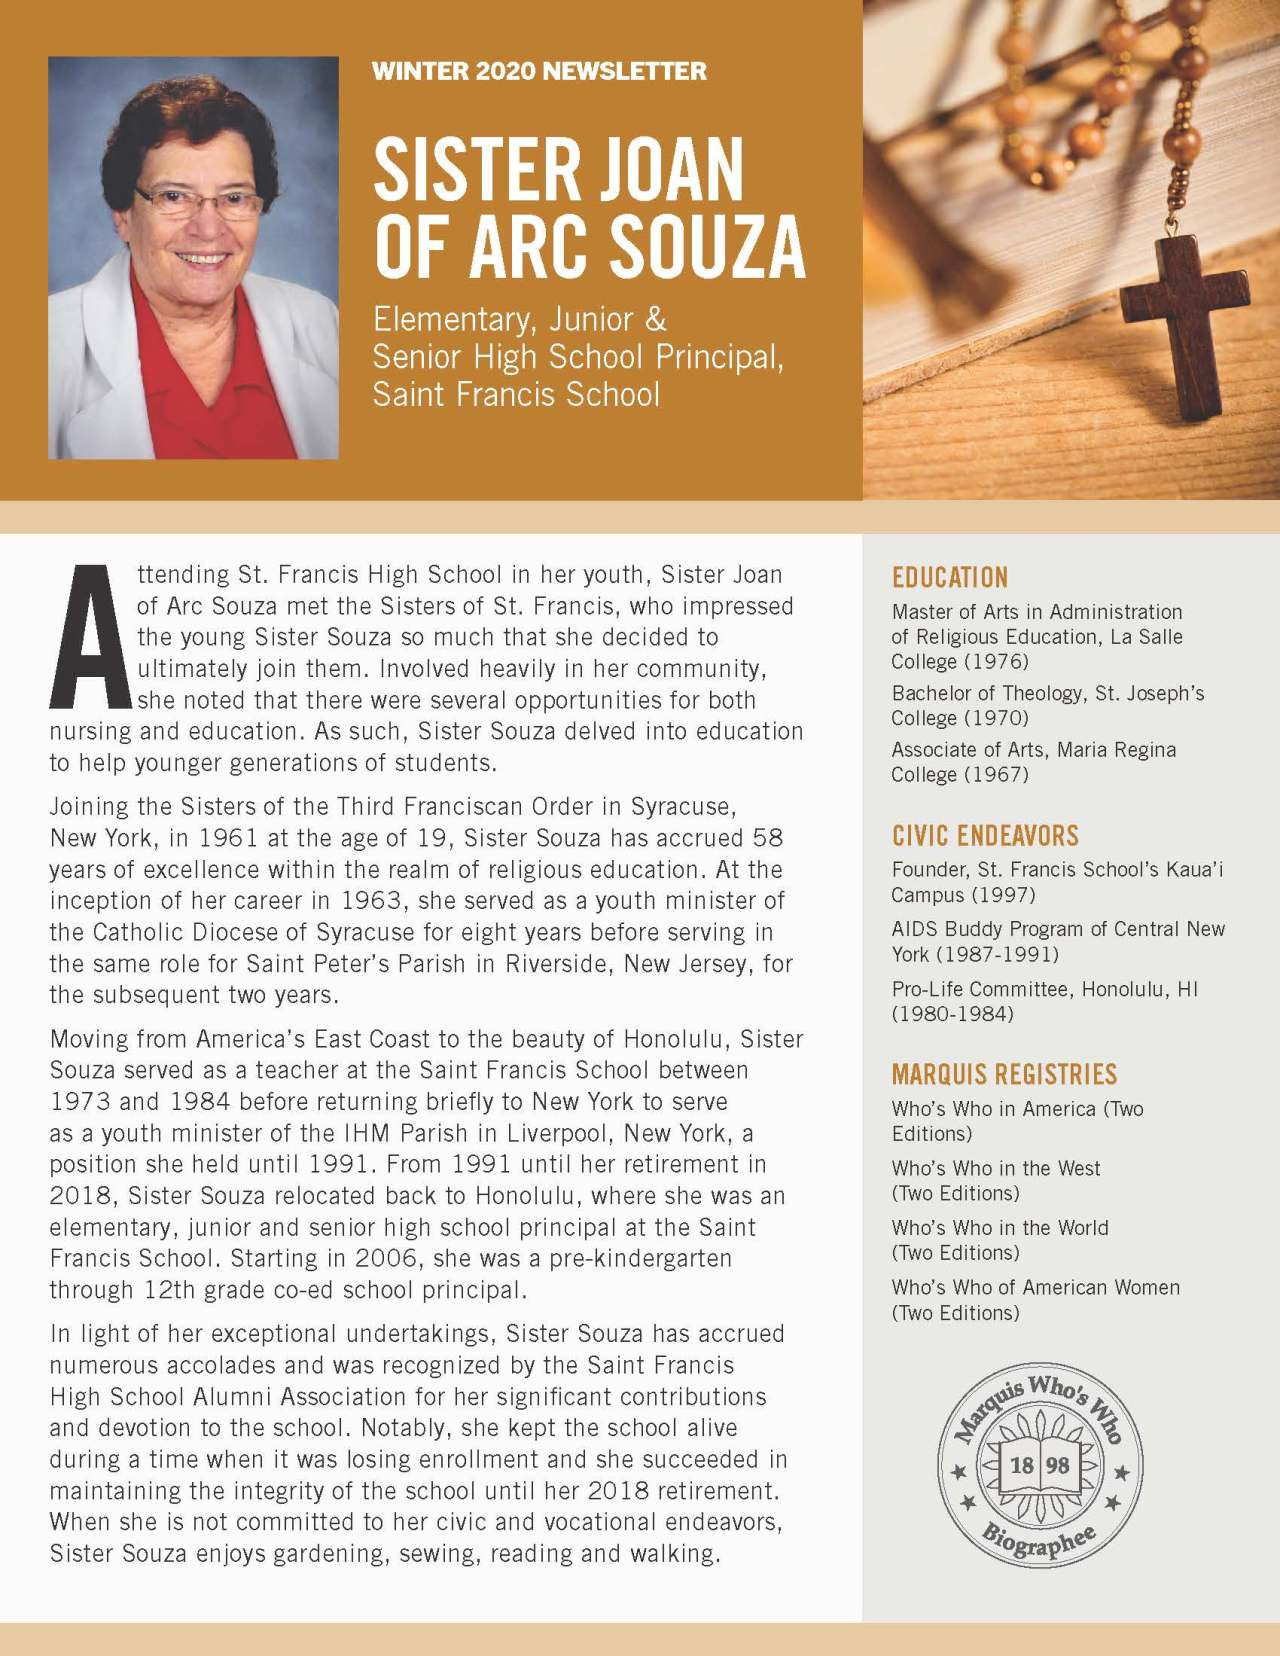 Souza, Joan of Arc 4796551_26419953 Newsletter